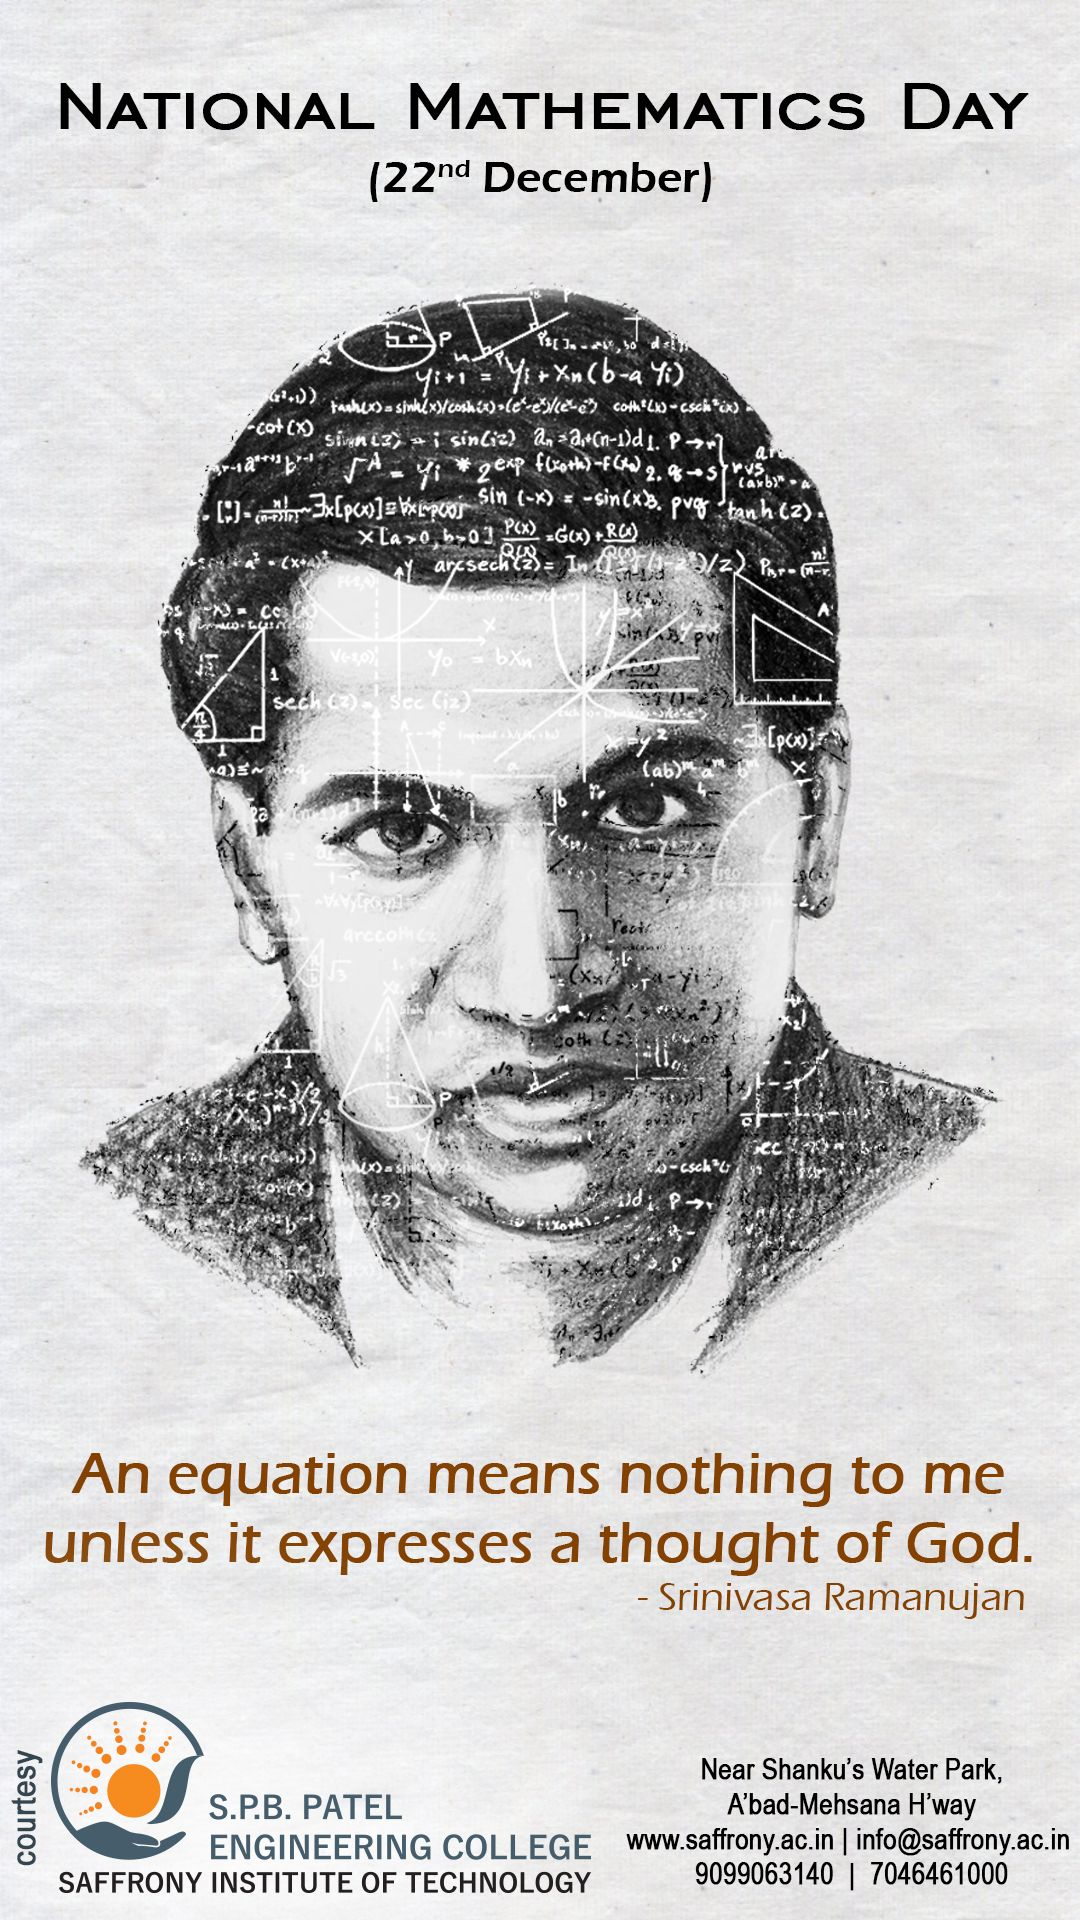 An equation means nothing to me unless it expresses a thought of god